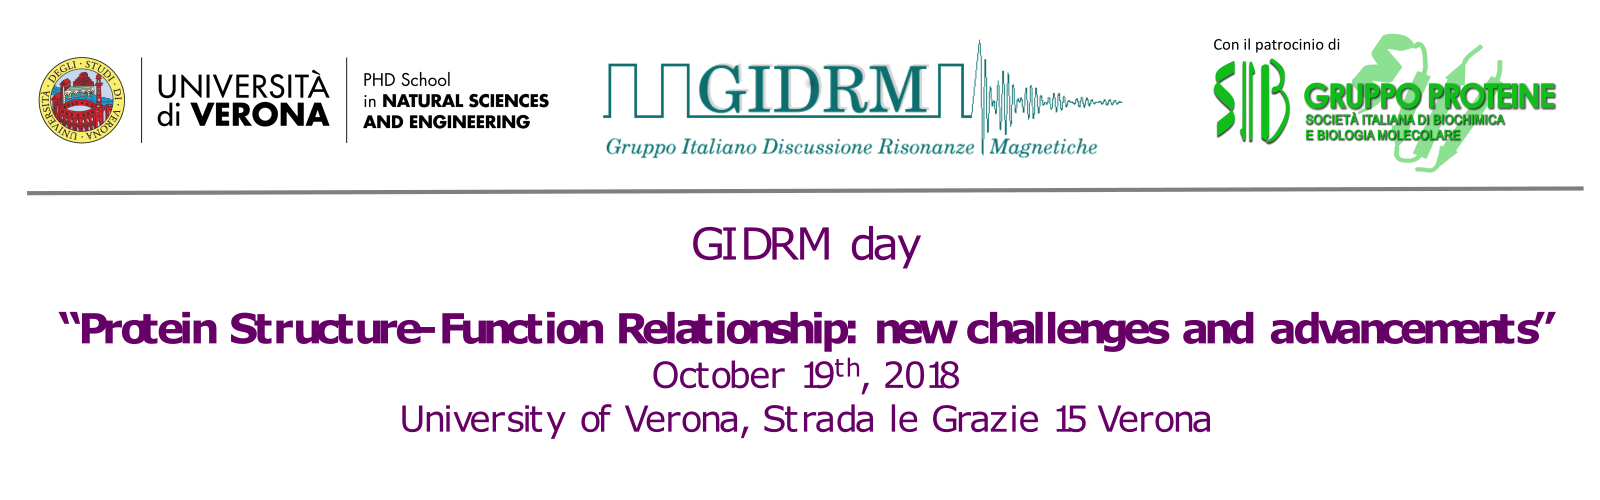 GIDRM day. Protein Structure-Function Relationship: new challenges and advancements